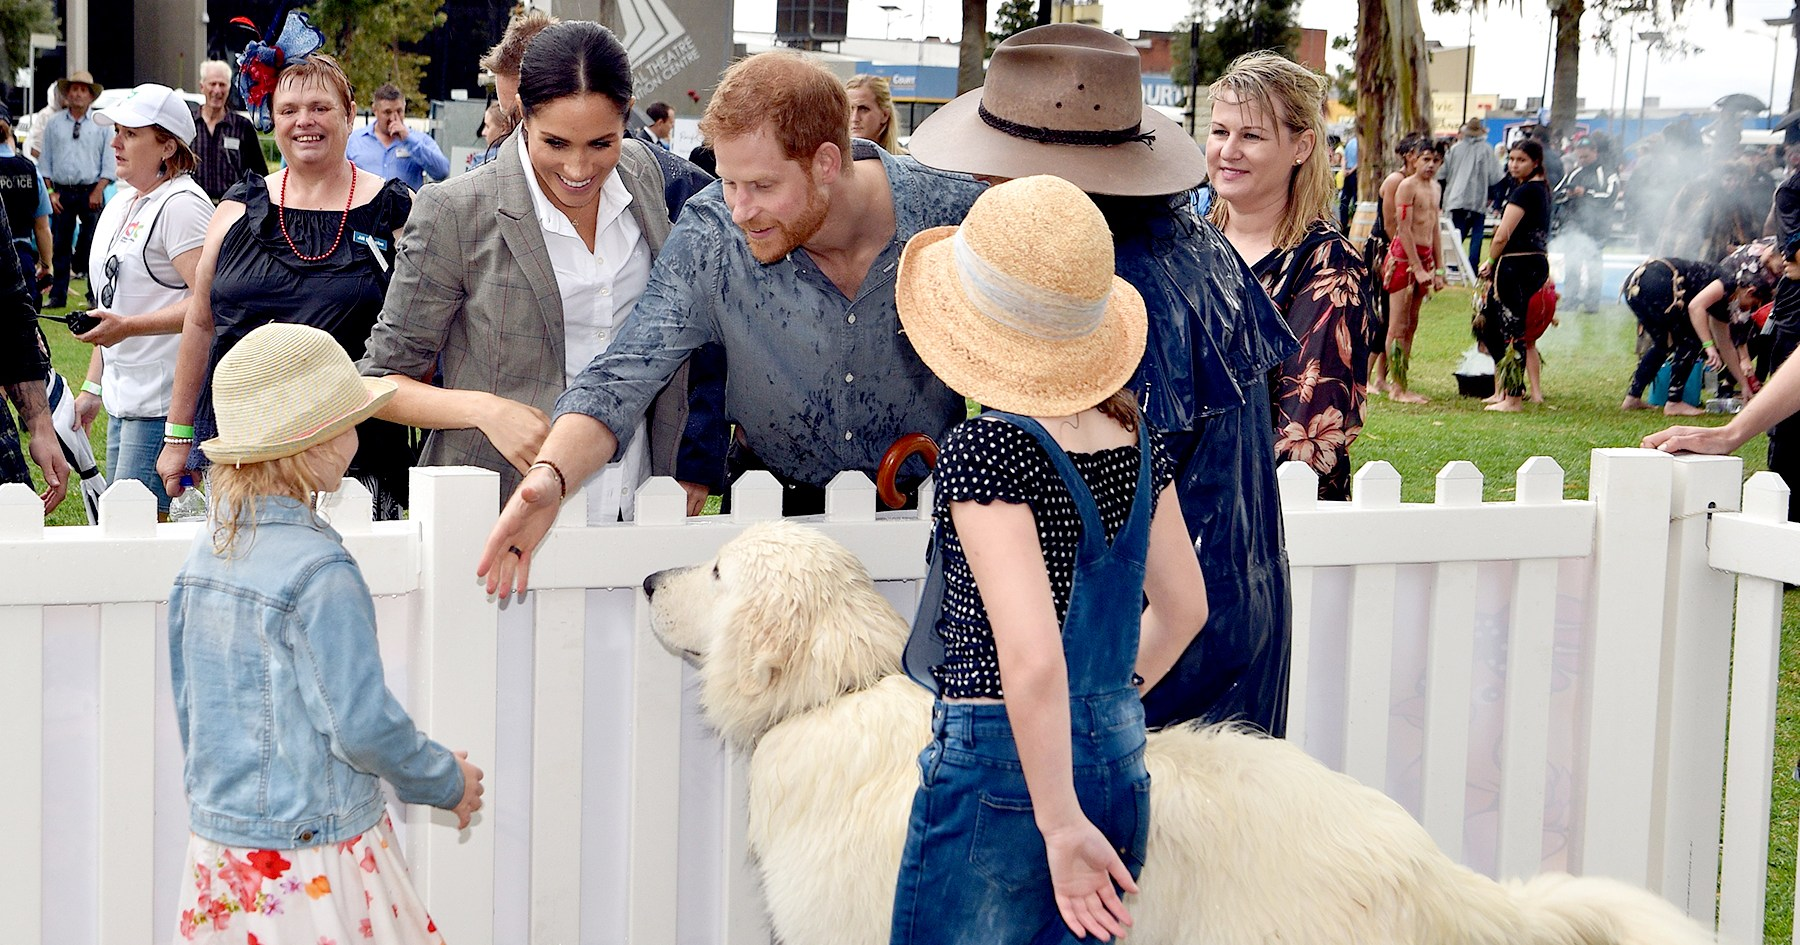 Prince Harry Made Us Melt While Playing With Dogs in Australia